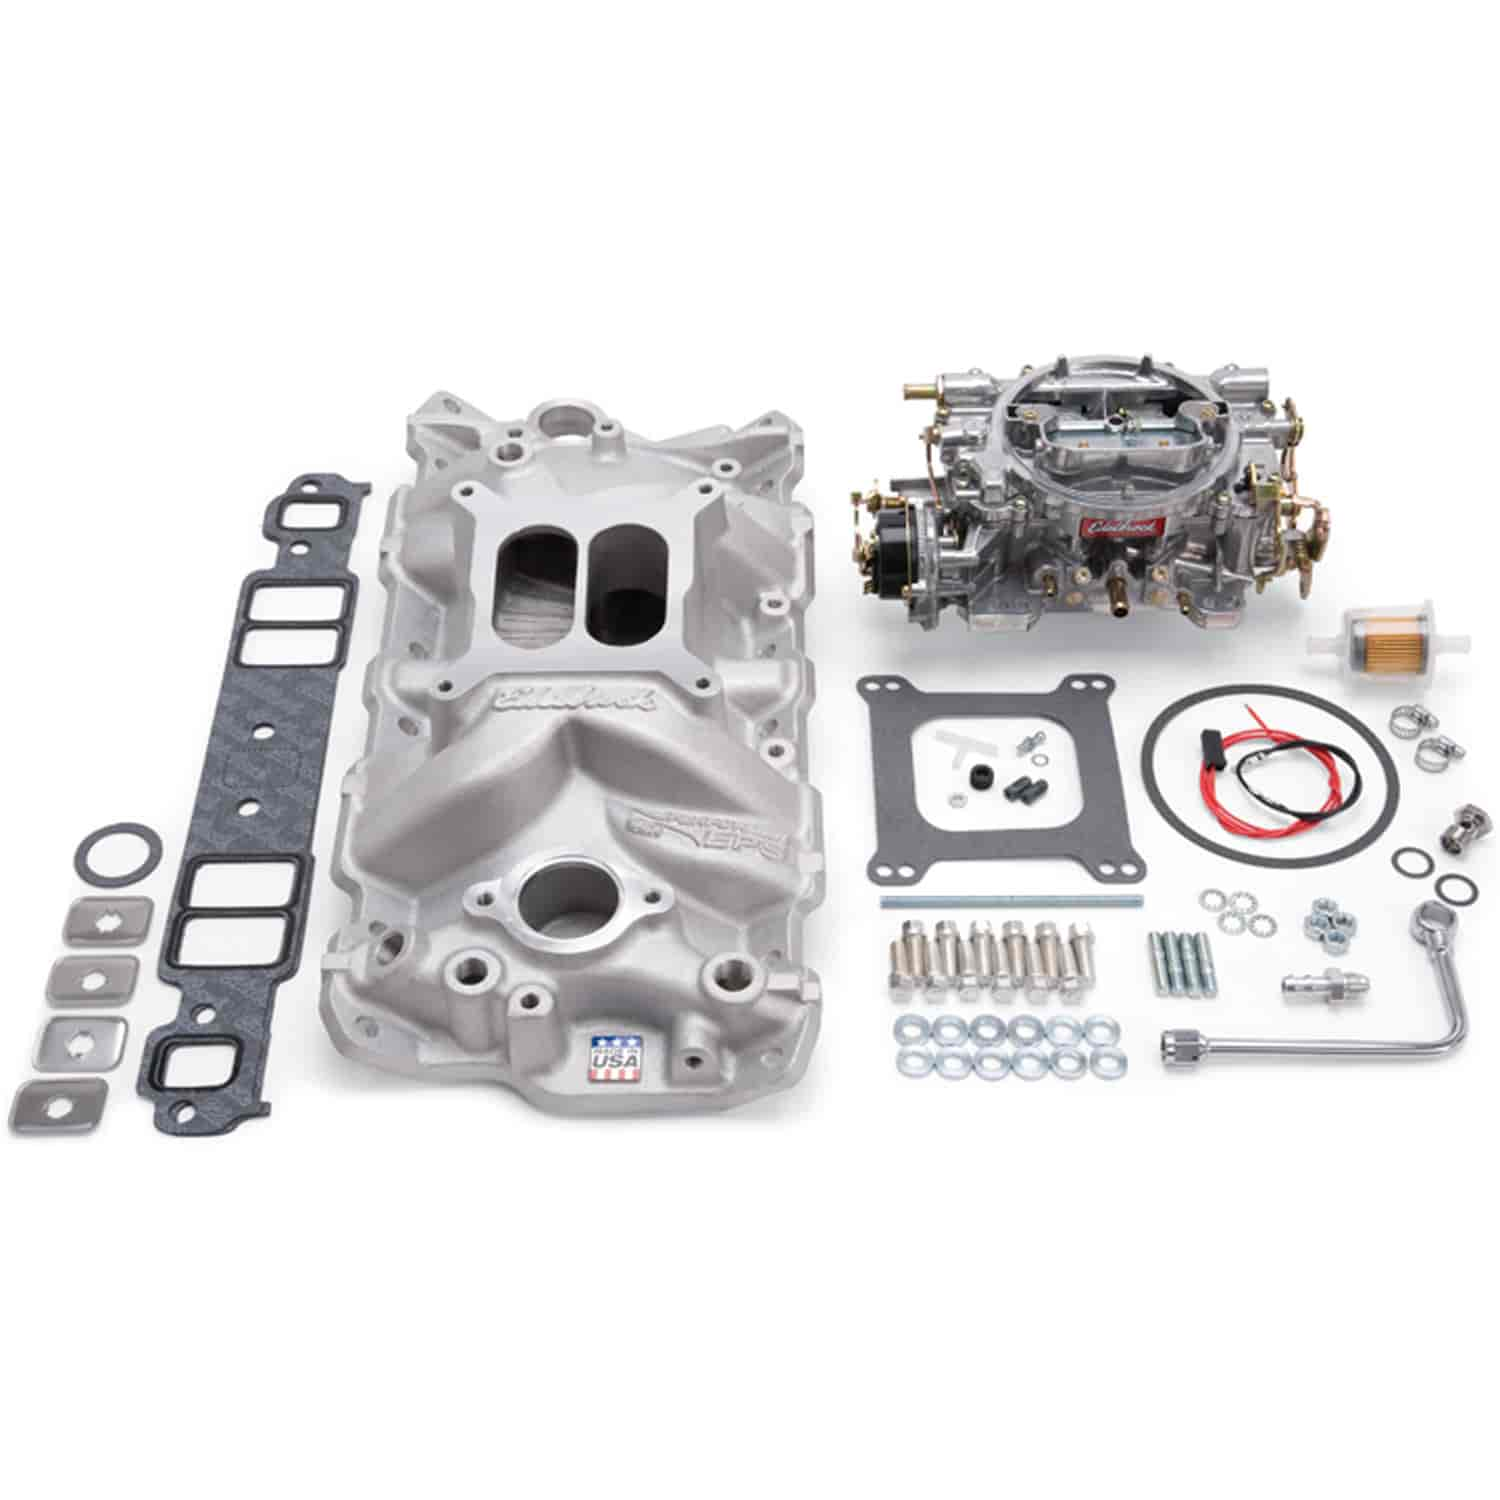 Edelbrock 2021 Single-Quad Manifold And Carb Kit